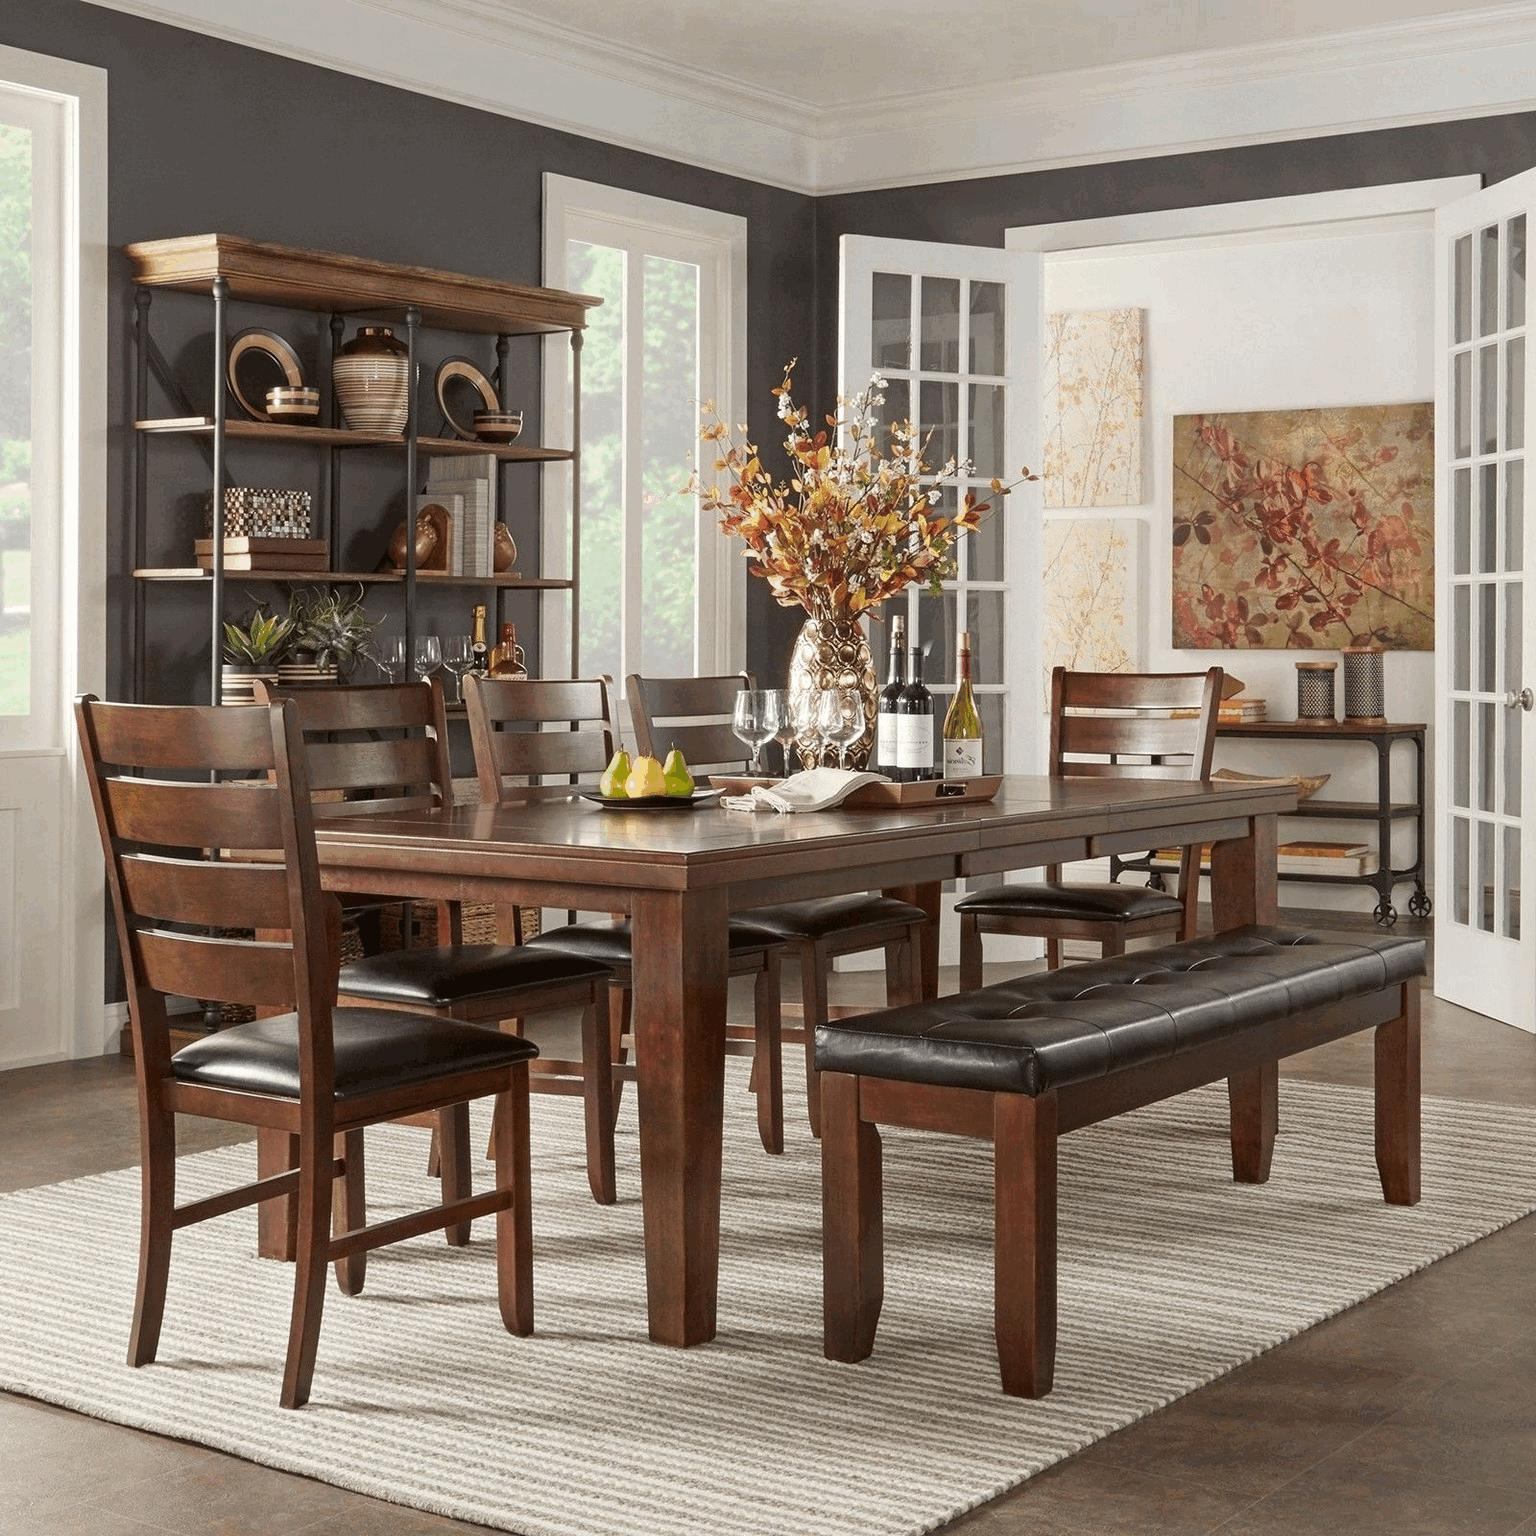 Dining Room Paint Ideas: 6+ Amazing Dining Room Paint Colors Ideas